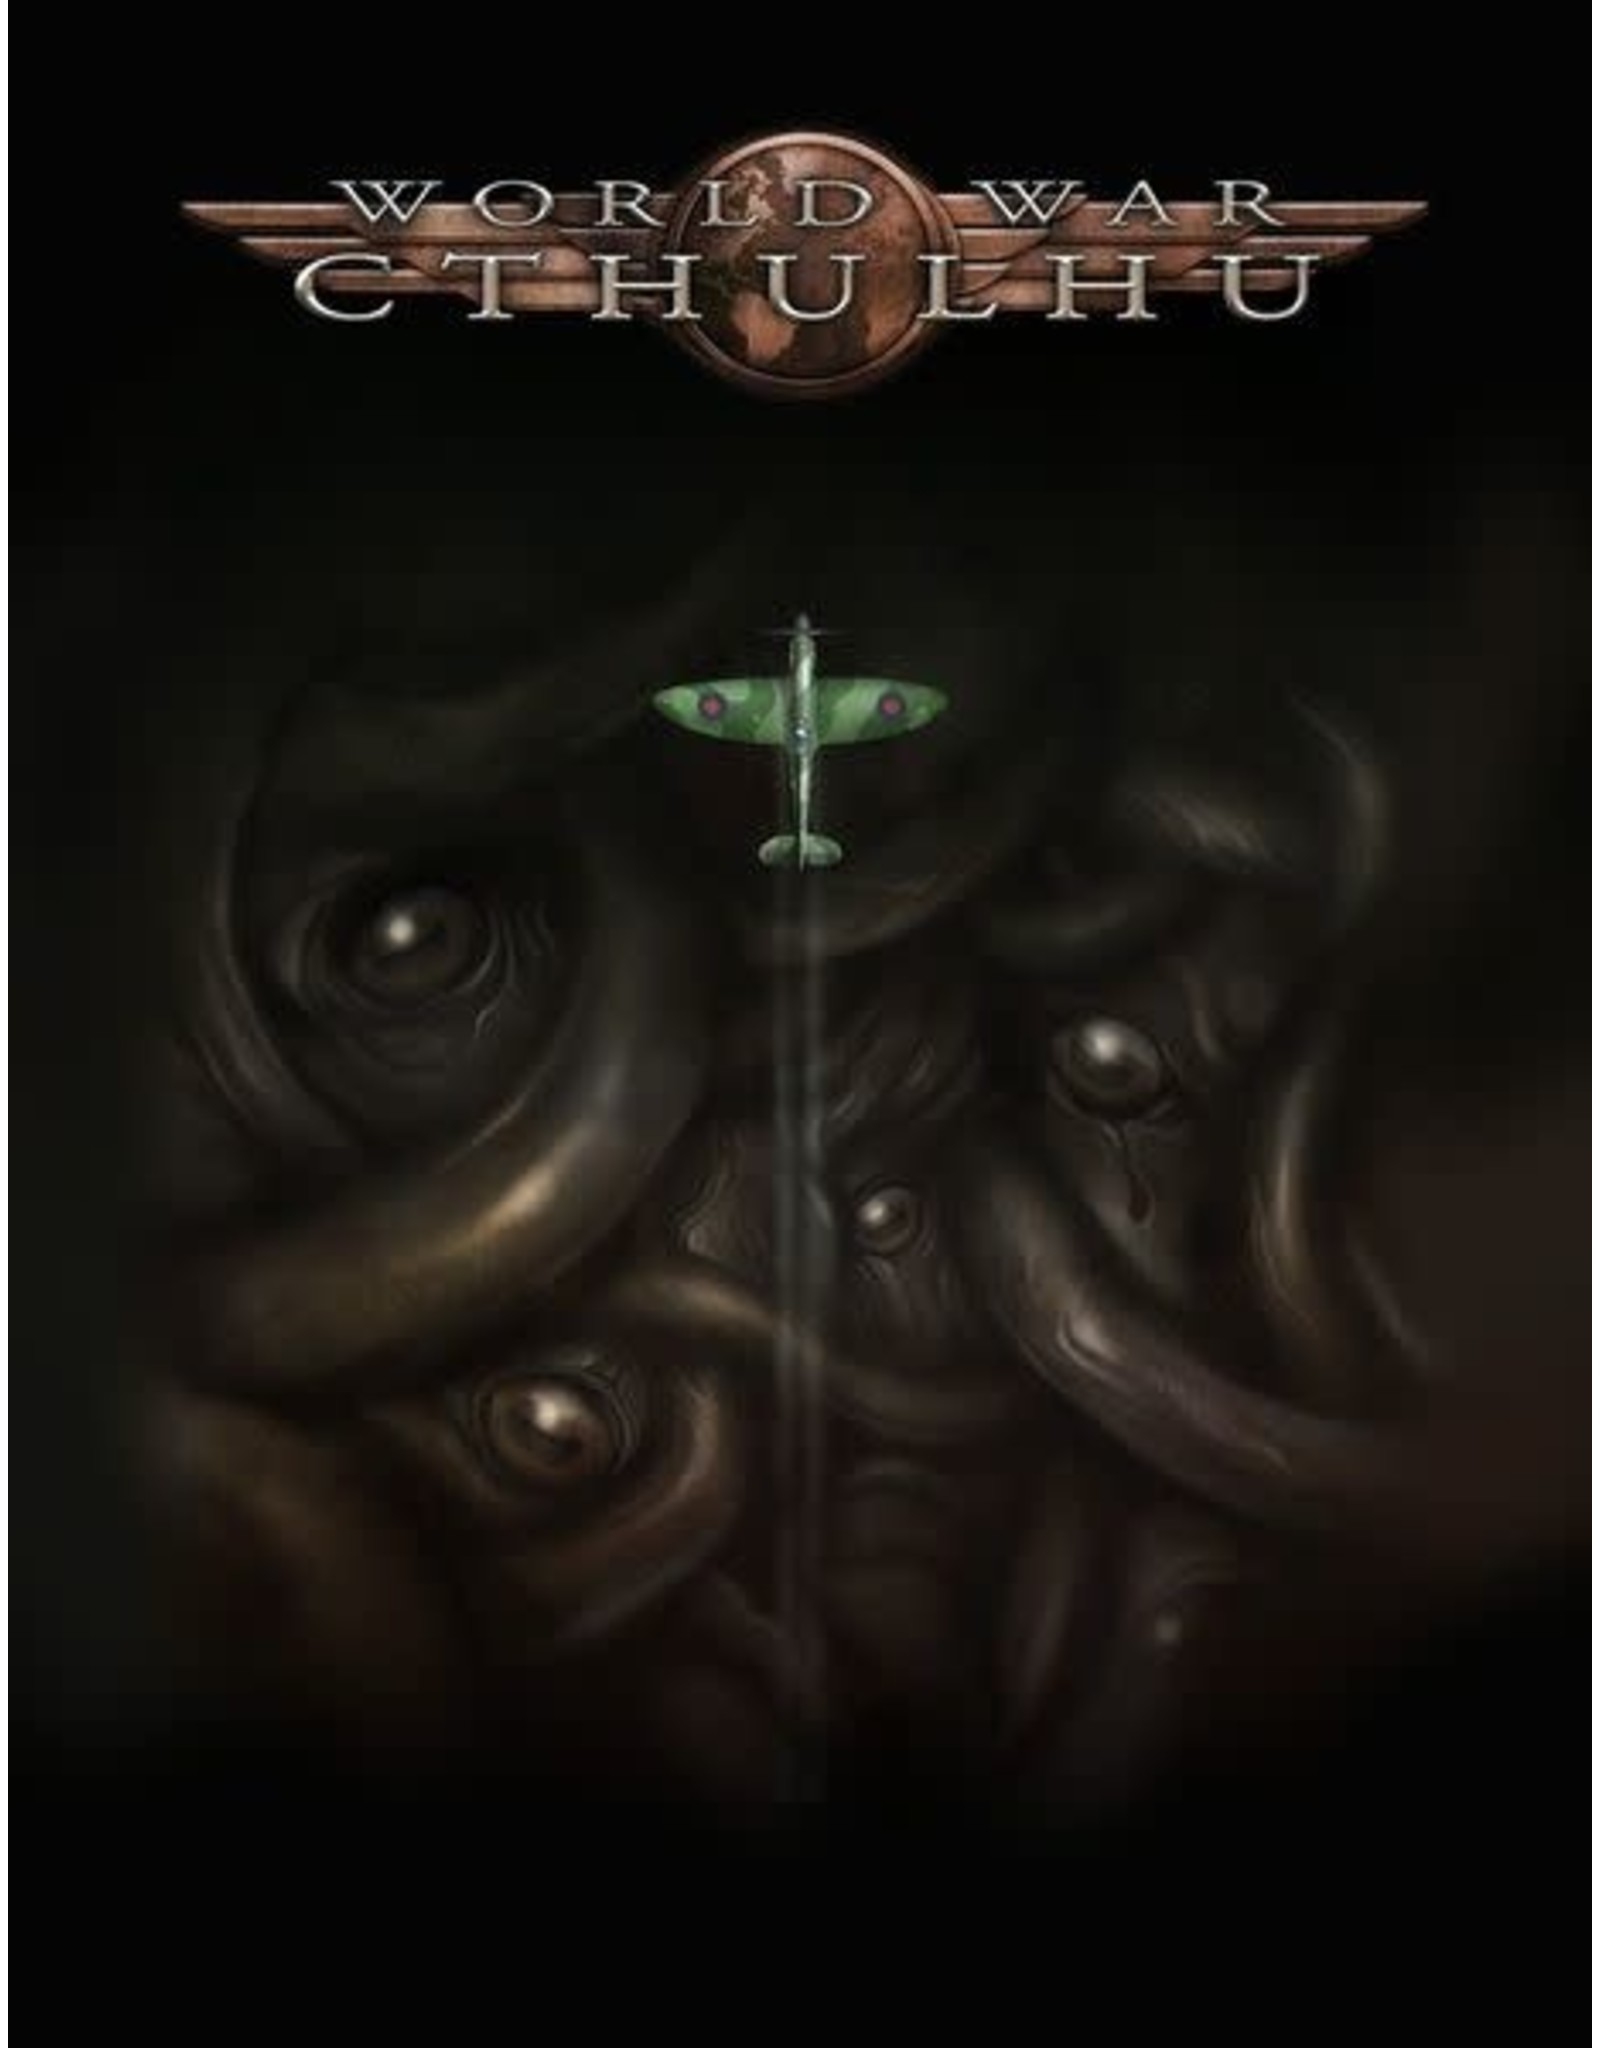 Cubicle 7 Call of Cthulhu 6E: World War Cthulhu - The Darkest Hour